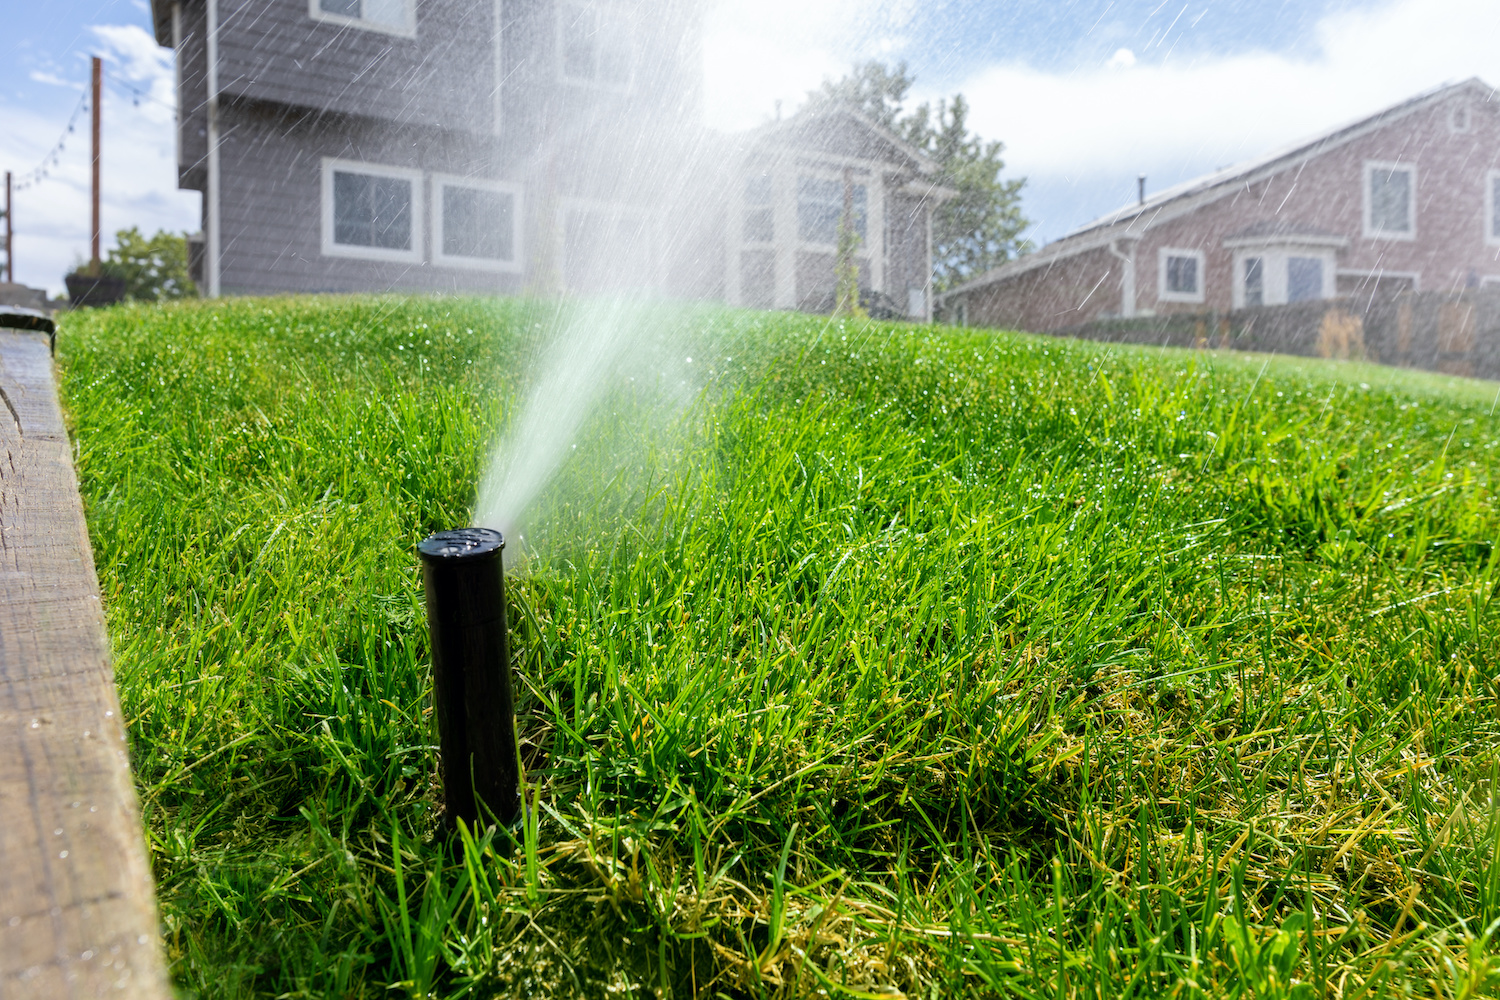 residential-irrigation-system